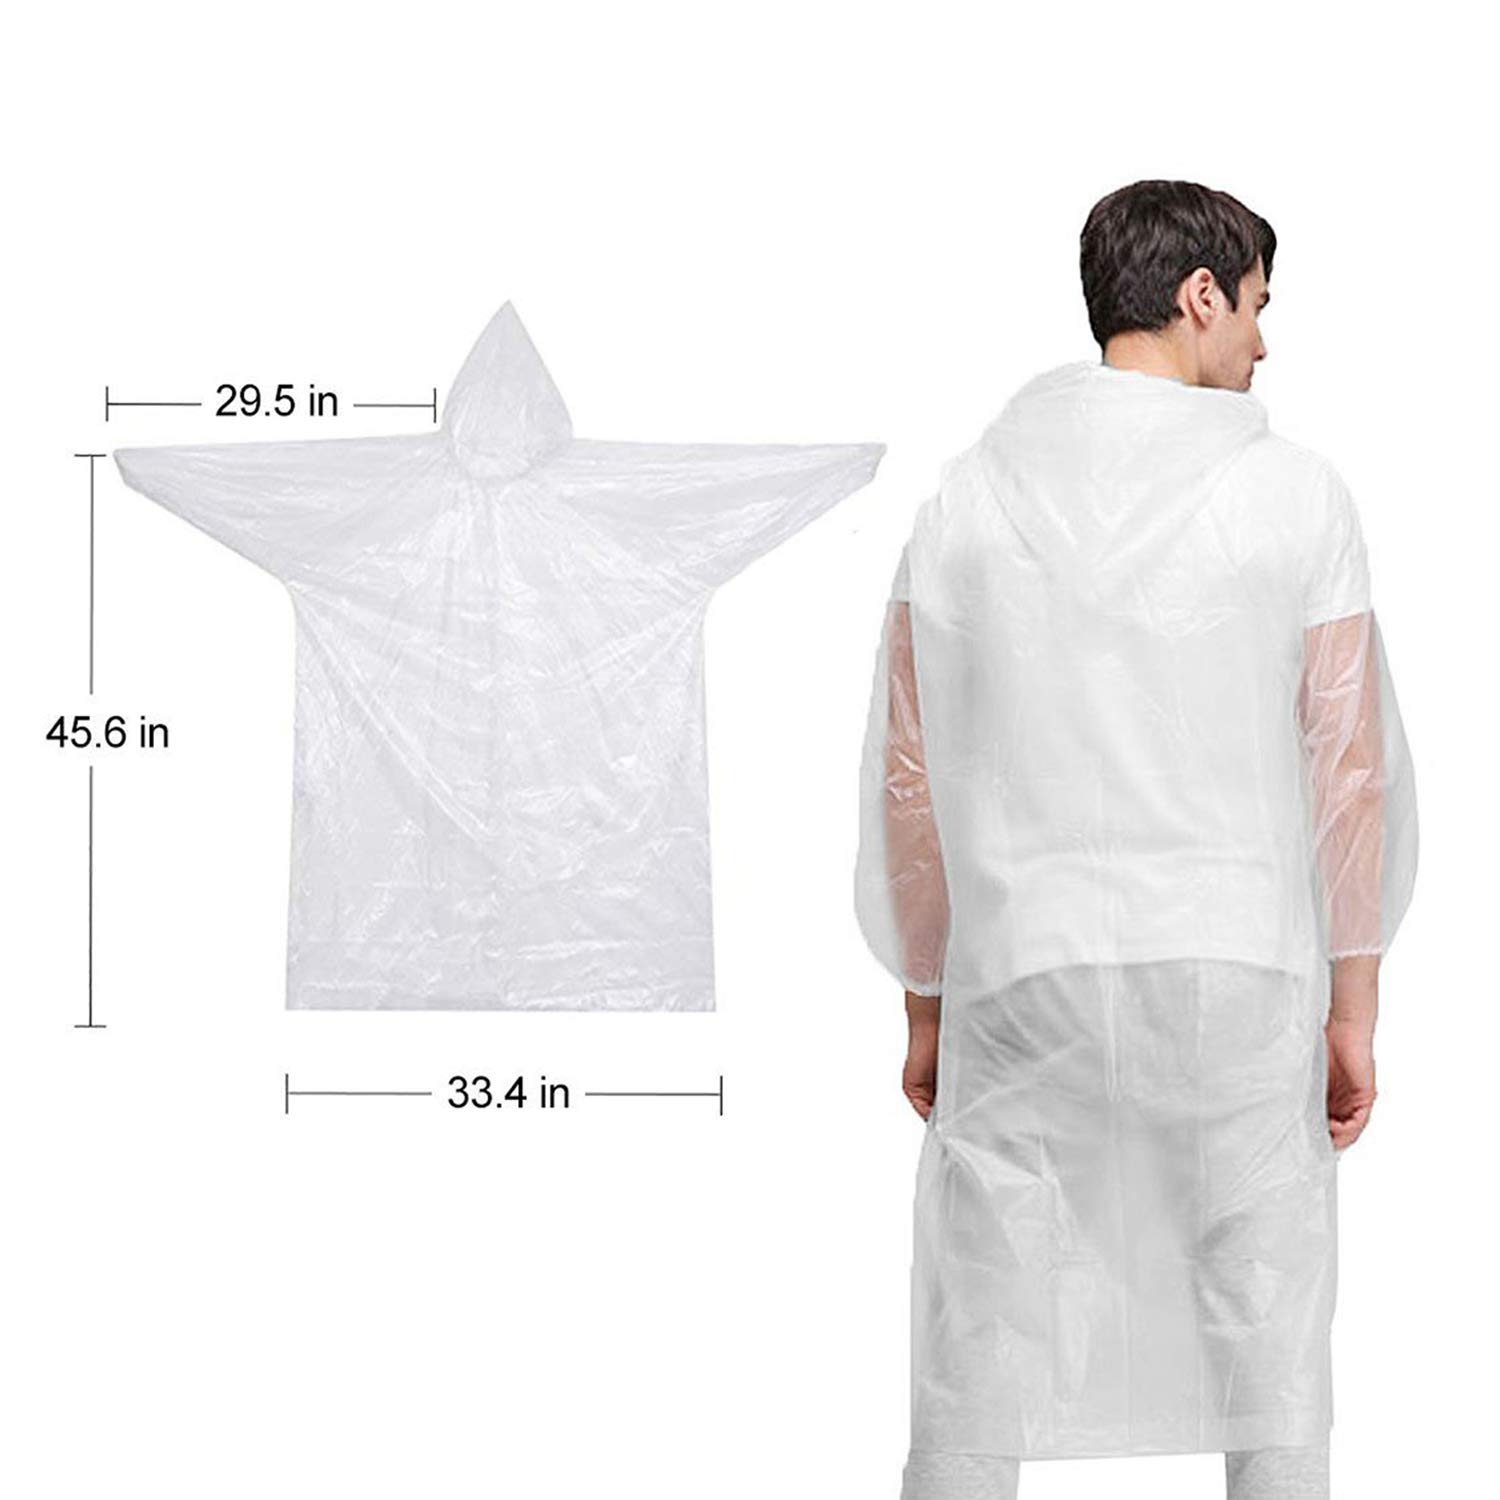 GYORGKSHI Disposable Rain Ponchos, Clear Adult Raincoat with Drawstring Hood, Emergency Lightweight Poncho for Men Women (6 Pack)